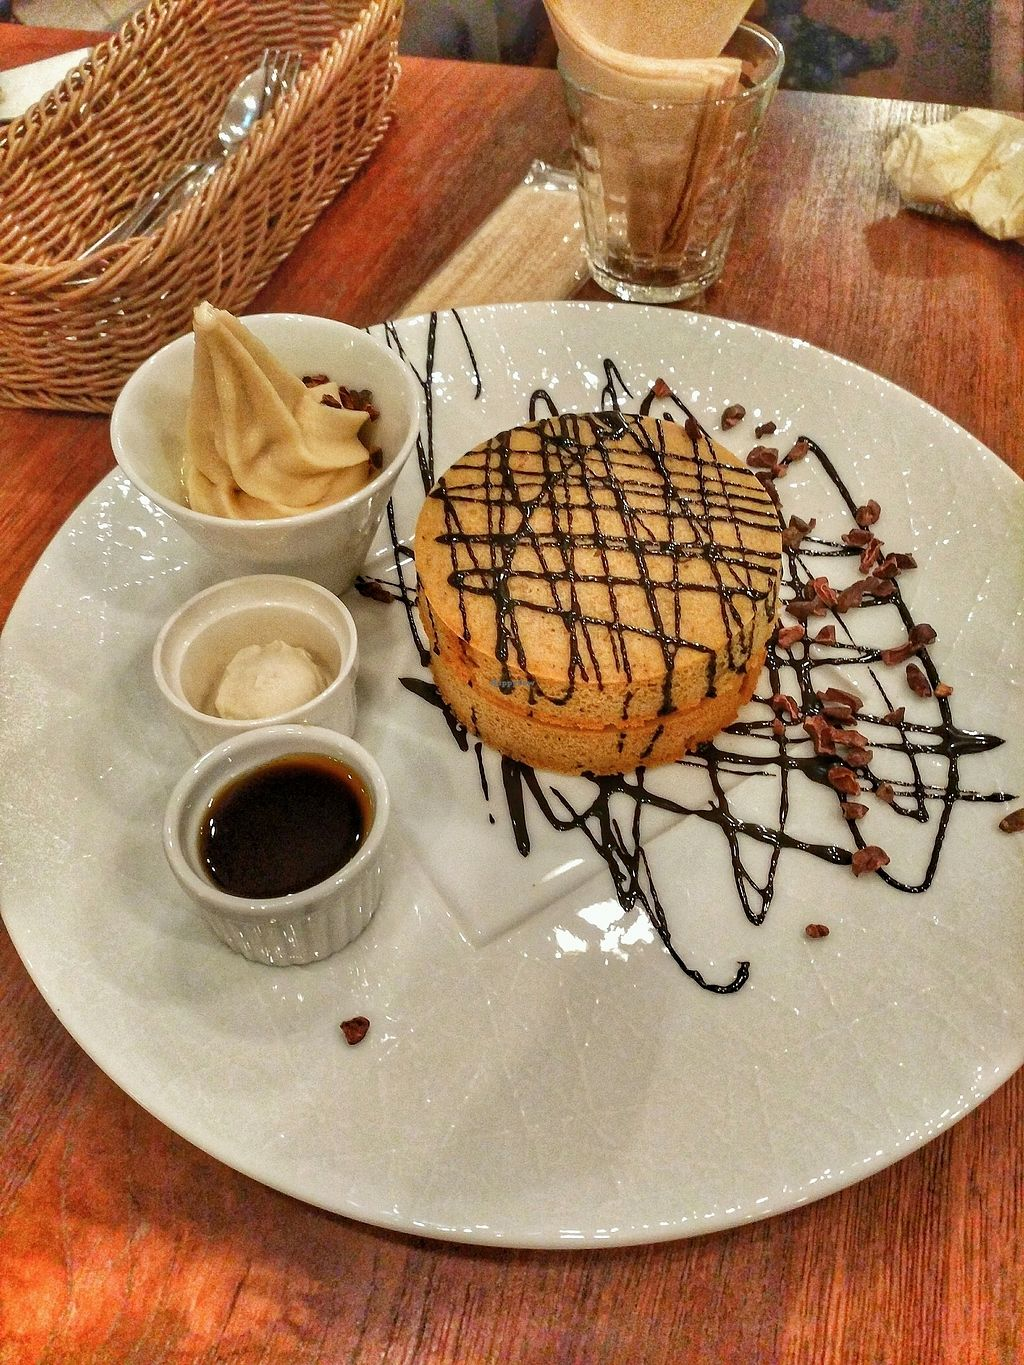 """Photo of Choice  by <a href=""""/members/profile/ShaharOfir"""">ShaharOfir</a> <br/>Chocolate pancake  <br/> September 28, 2017  - <a href='/contact/abuse/image/42327/309316'>Report</a>"""